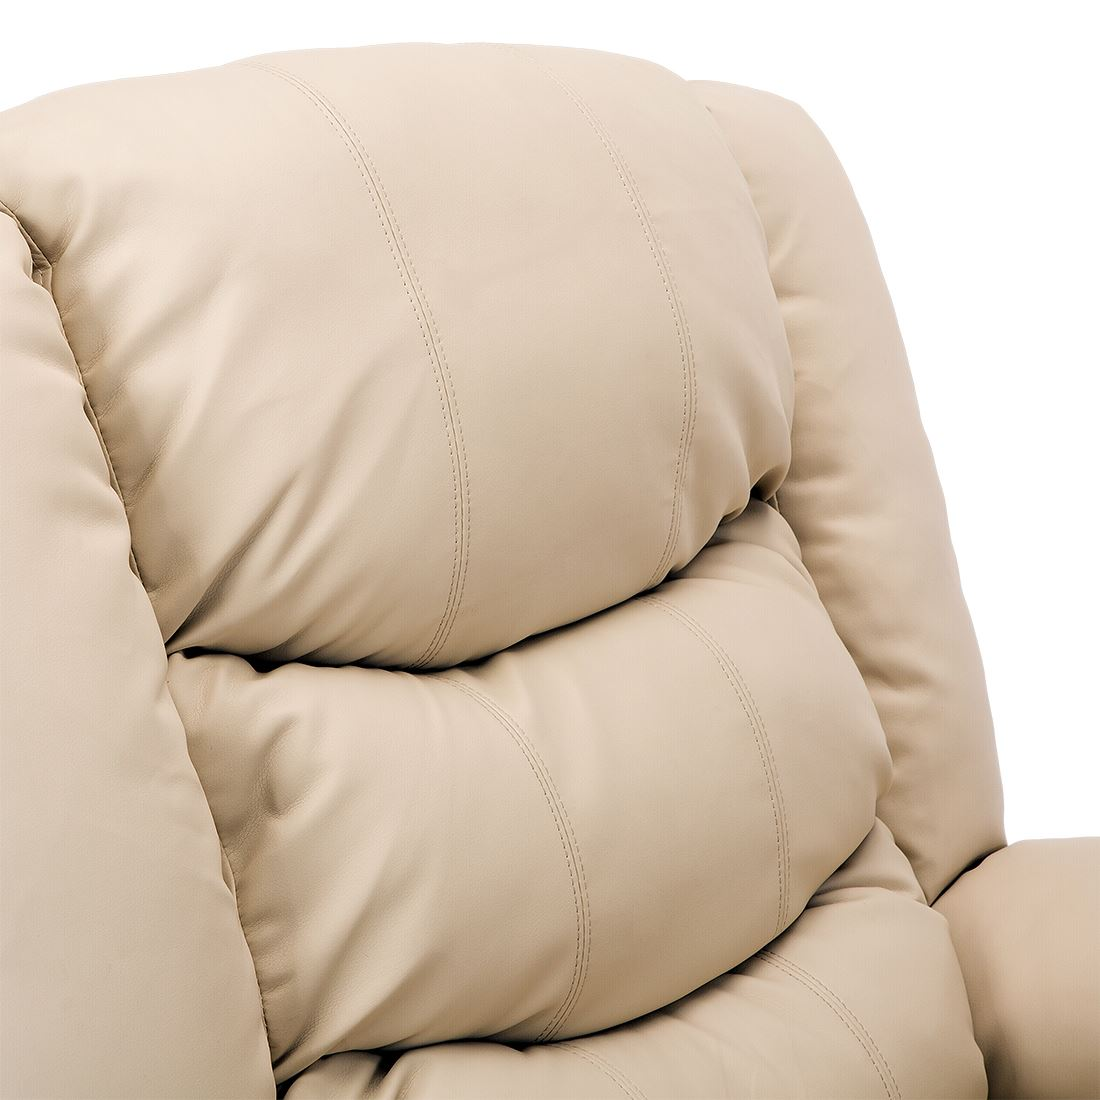 SEATTLE-ELECTRIC-RISE-REAL-LEATHER-RECLINER-ARMCHAIR-SOFA-HOME-LOUNGE-CHAIR thumbnail 29